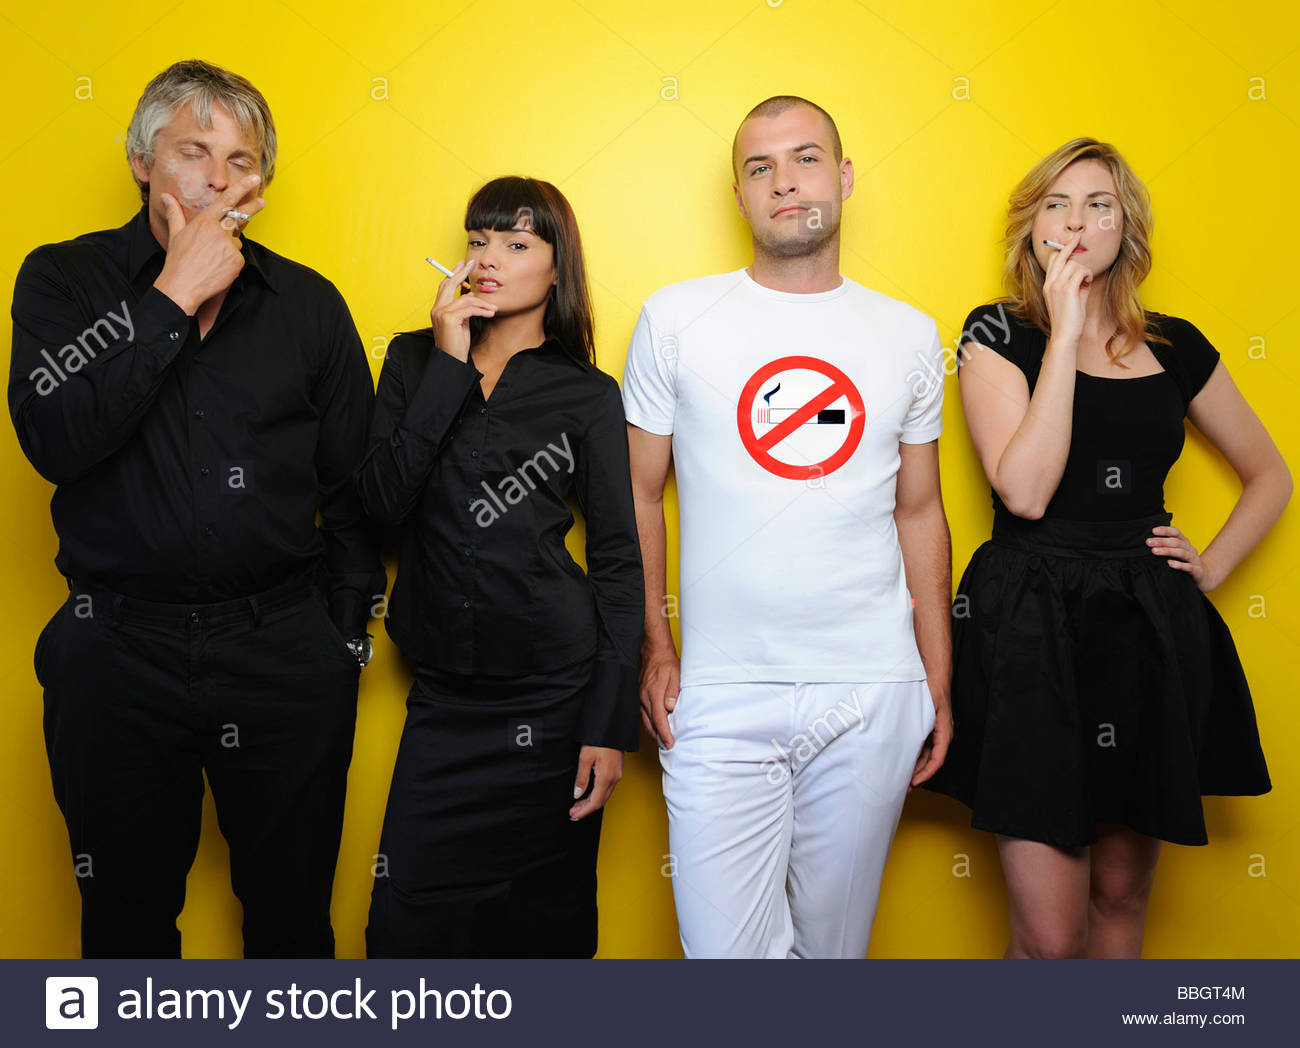 Non smoker surrounded by smokers, studio shot - Stock Image